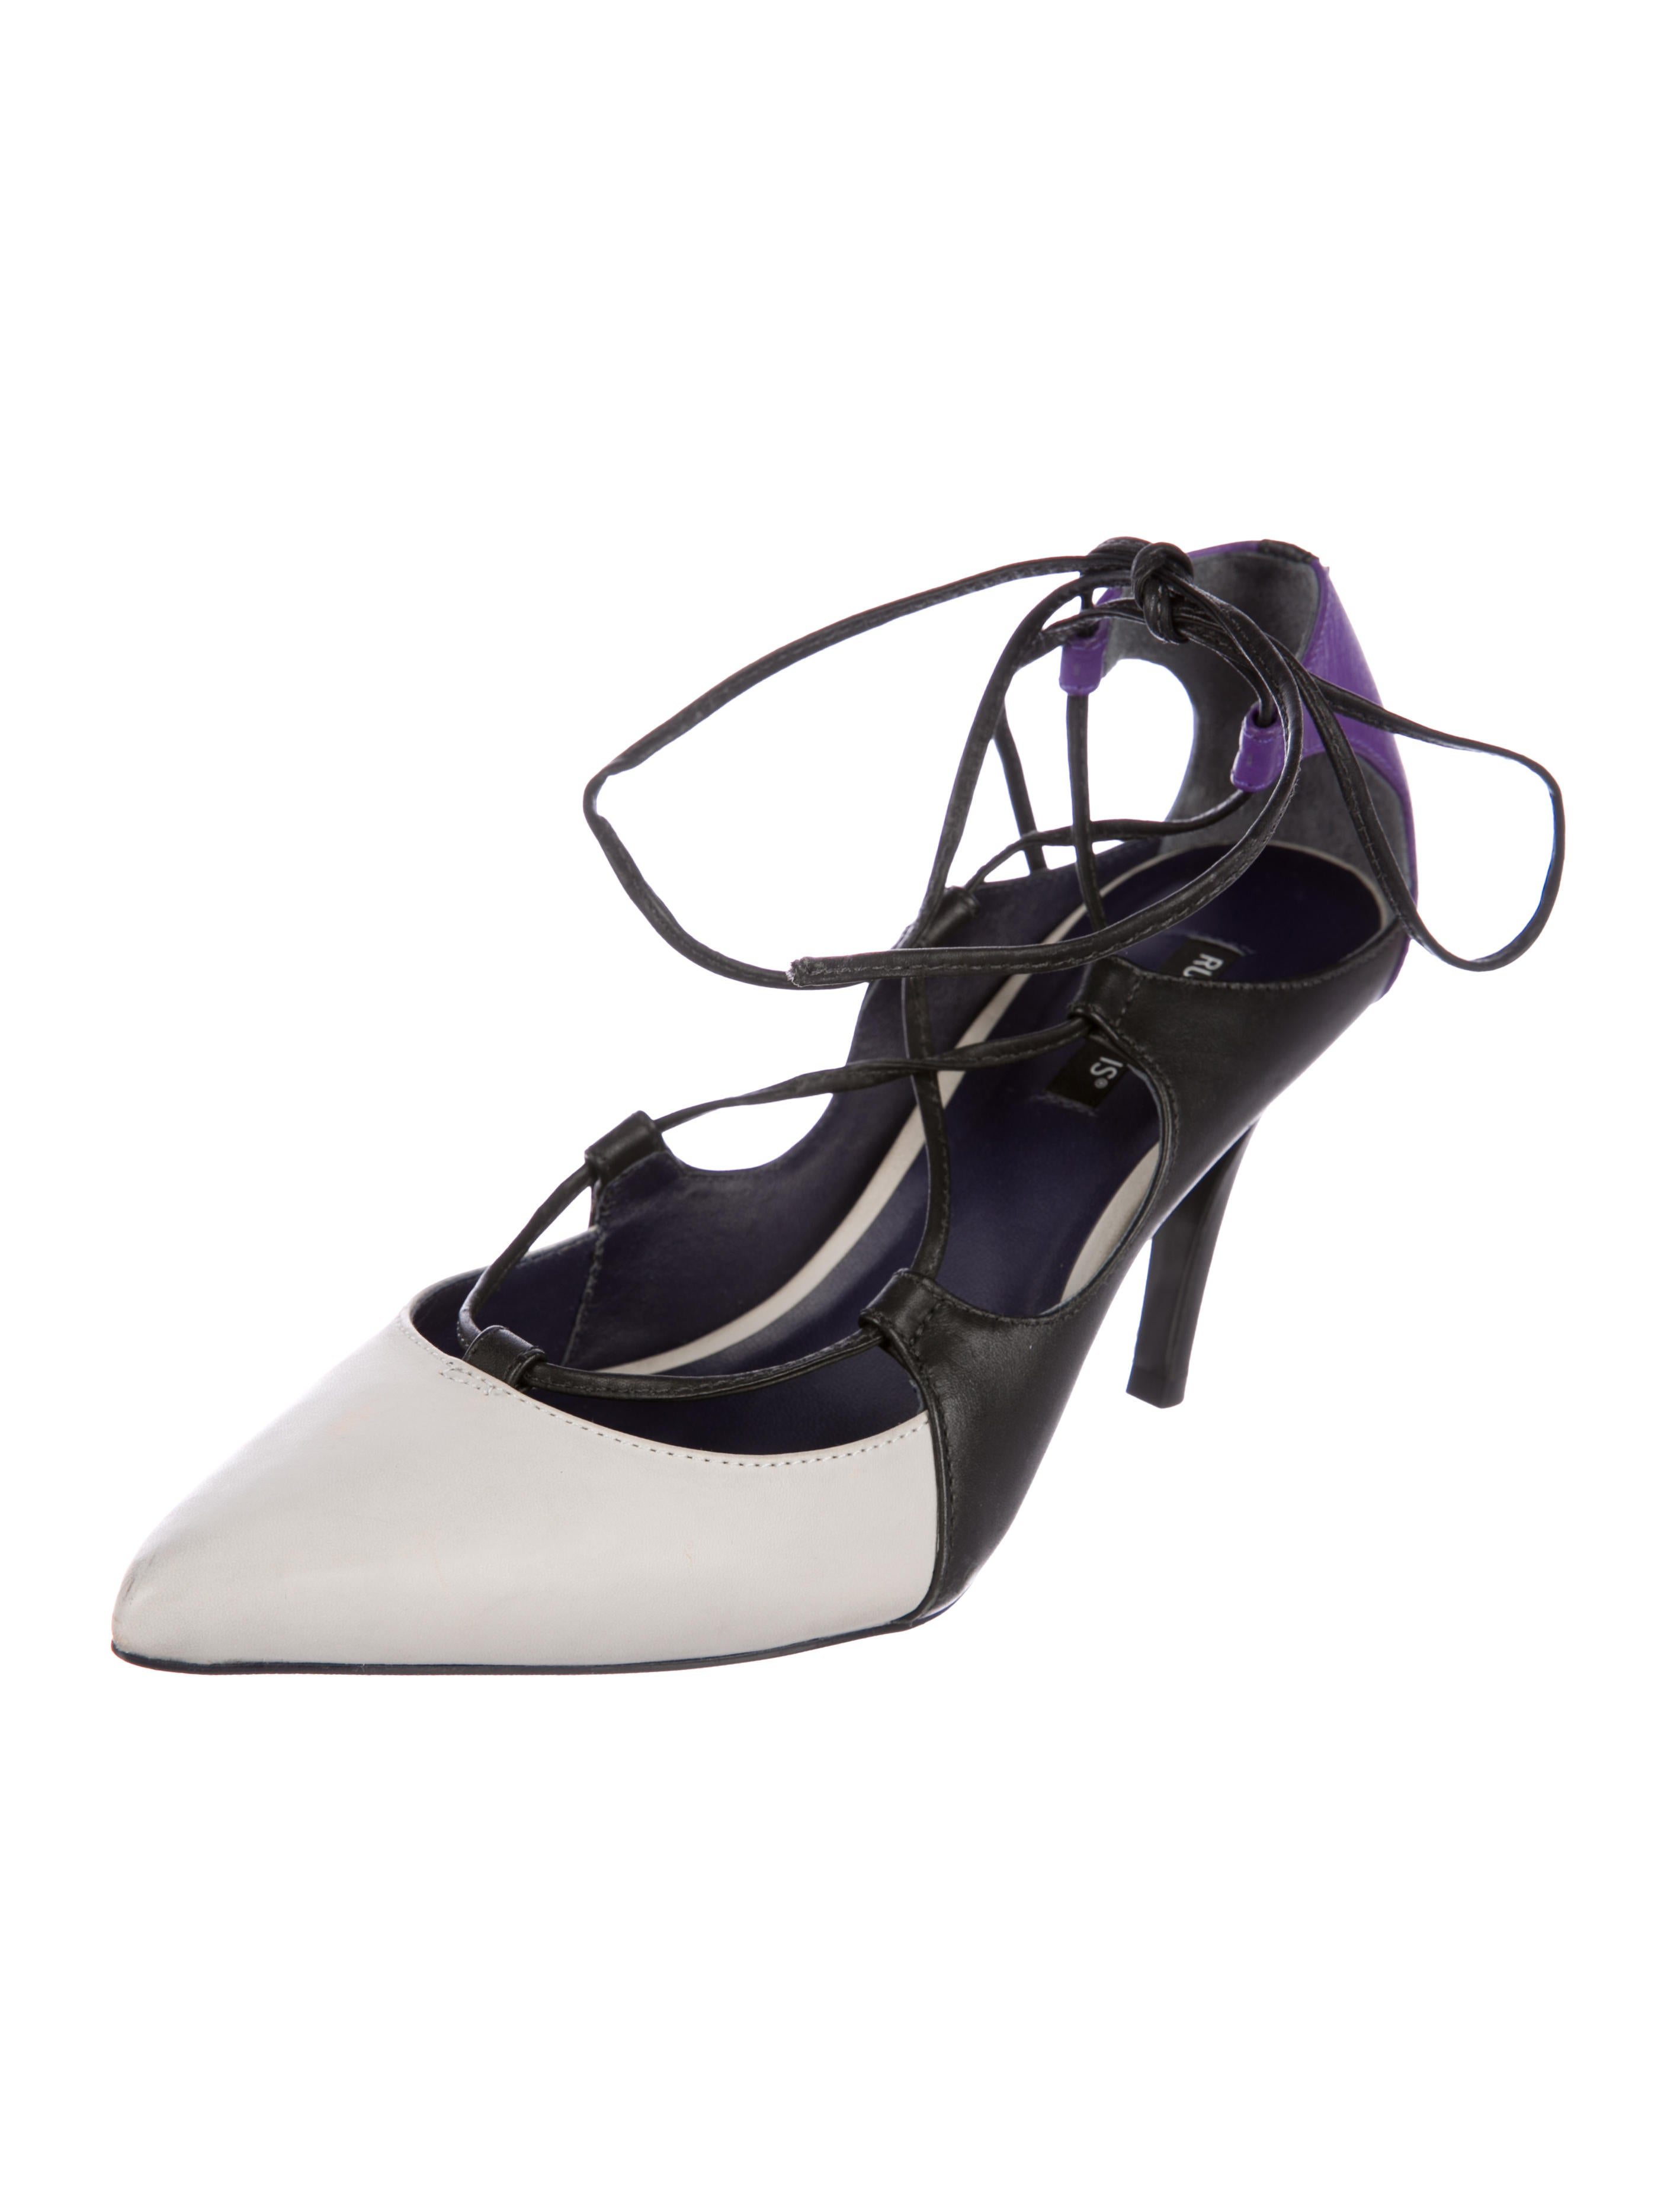 cheap for sale buy cheap best seller Ruthie Davis Leather Lace-up Pointed-Toe Color-Blocked Pumps cheap price outlet cheap sale latest buy cheap 100% original XjnFnnRarf